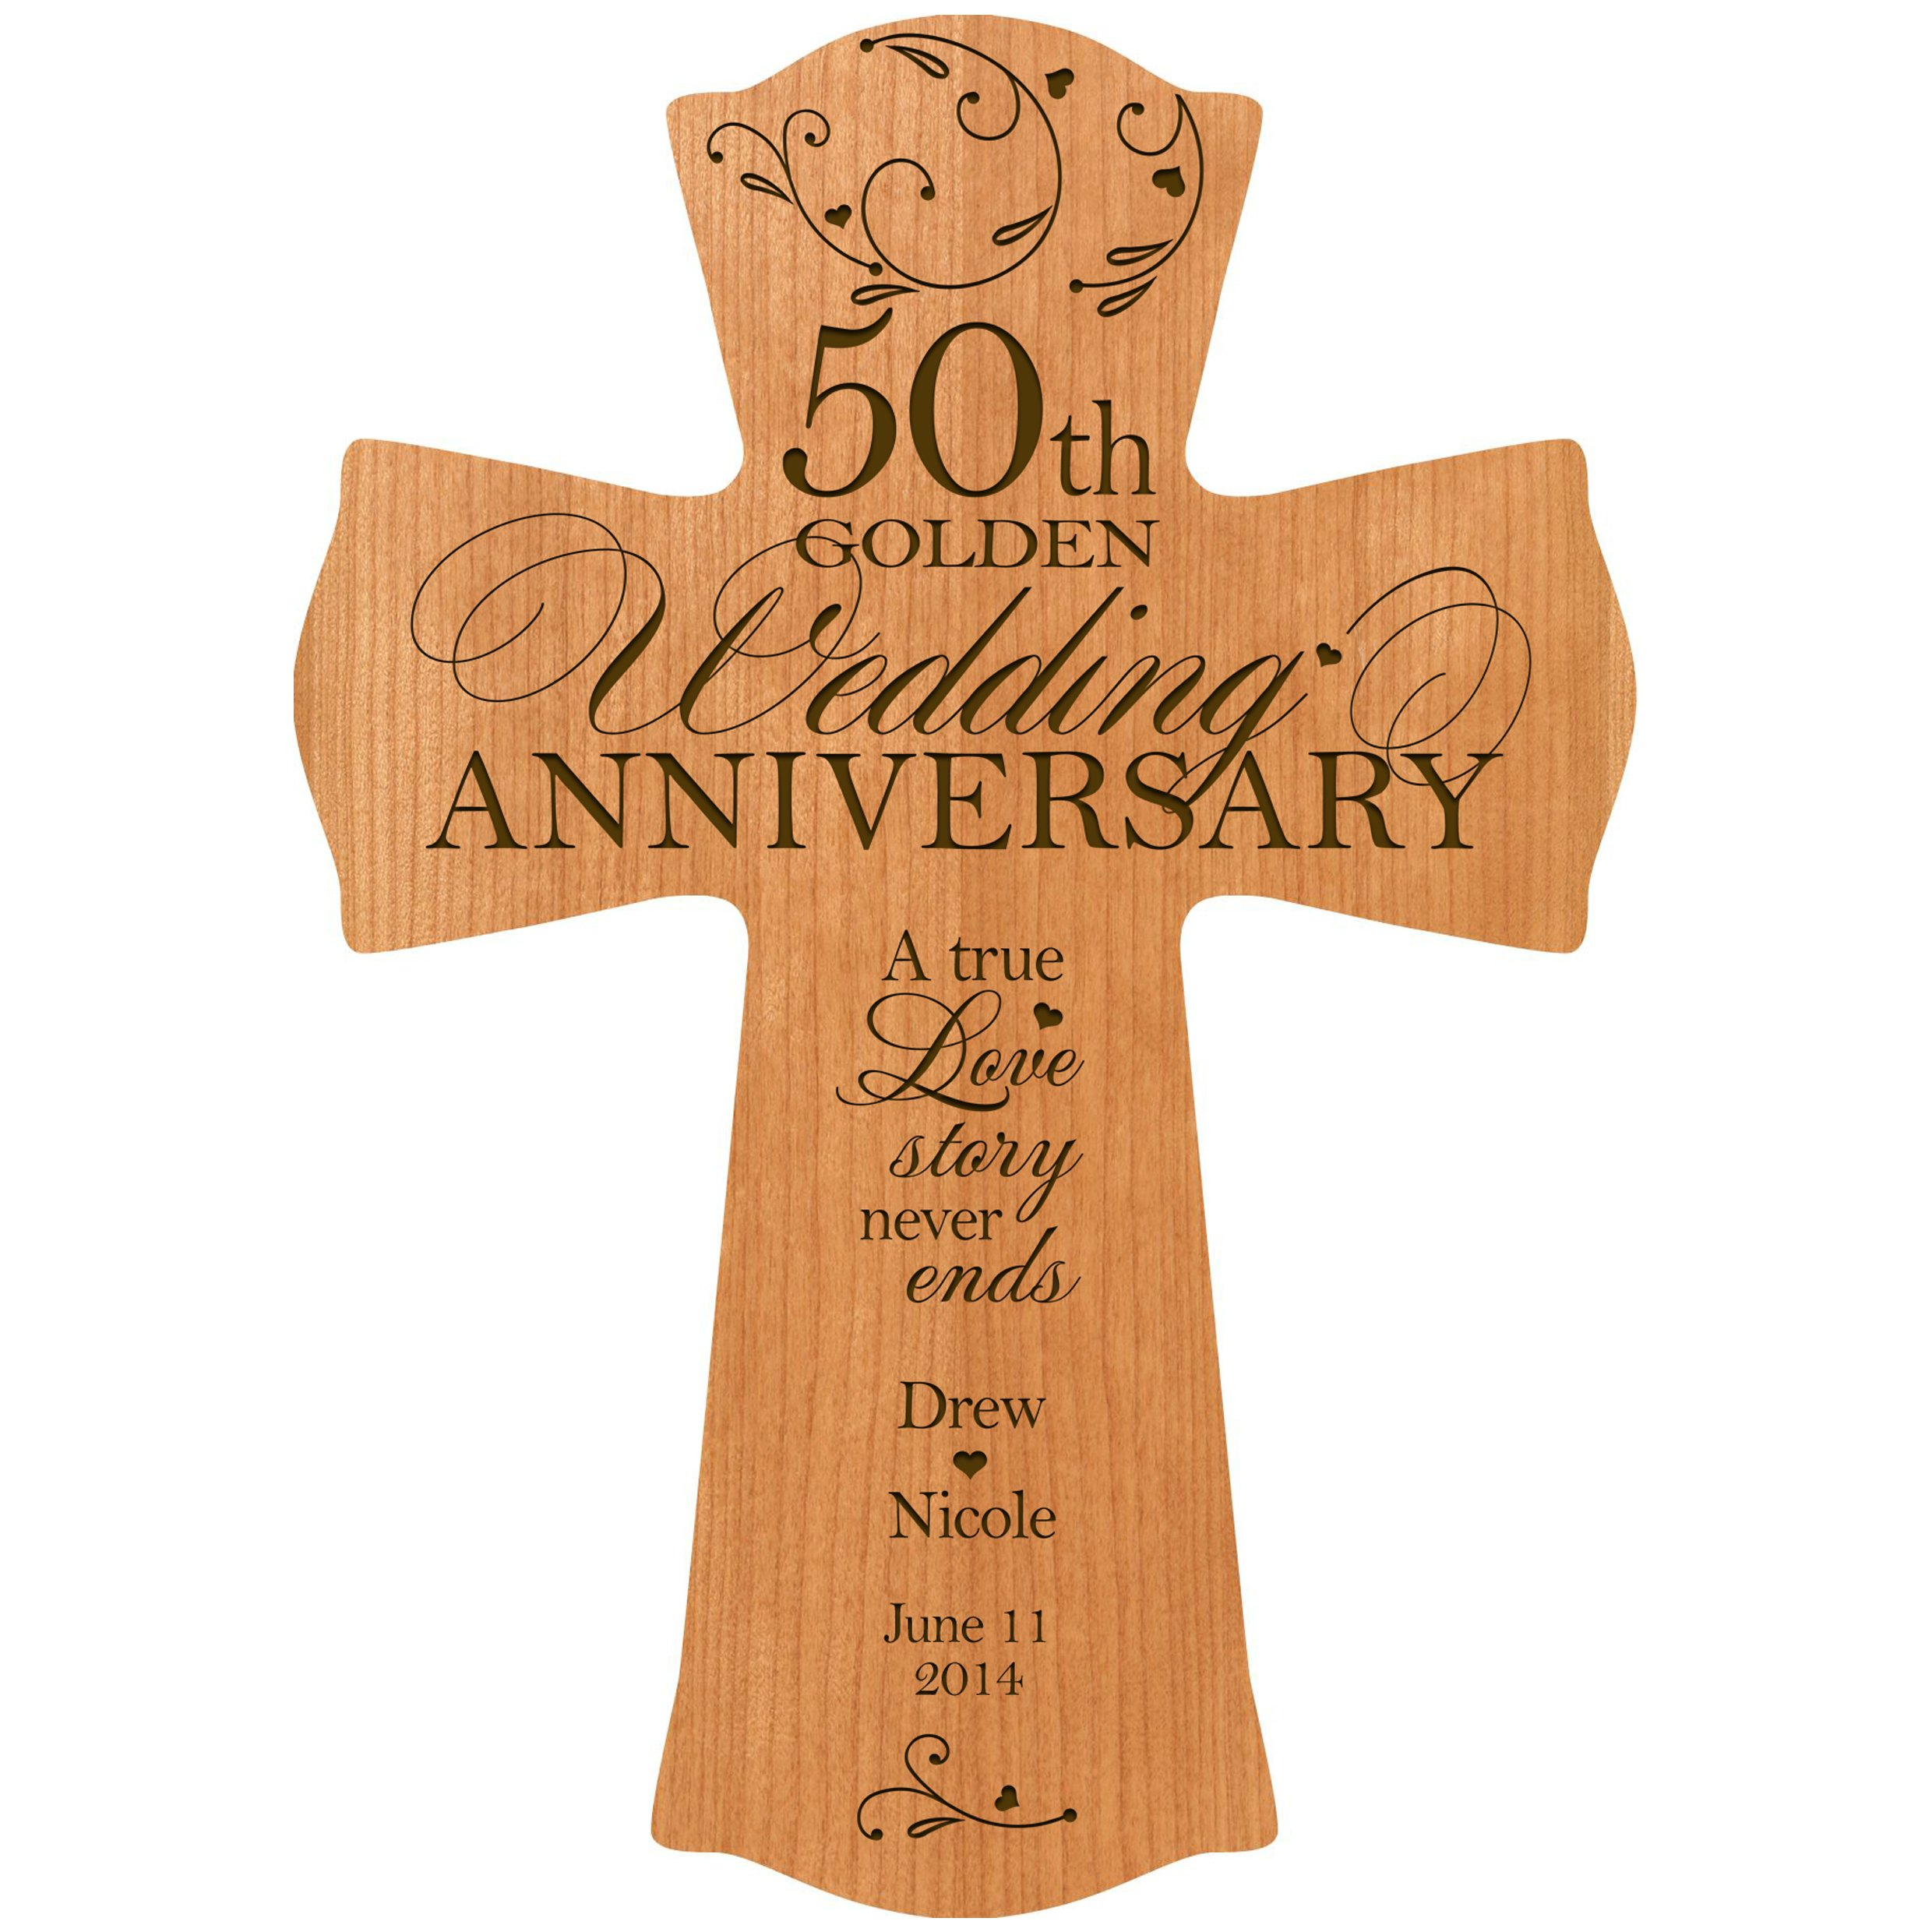 Personalized 50th Wedding Anniversary Wood Wall Cross Gift for Couple 50 Year for Her, for Him A True Love Story Never Ends (8.5'' x 11'', Cherry)